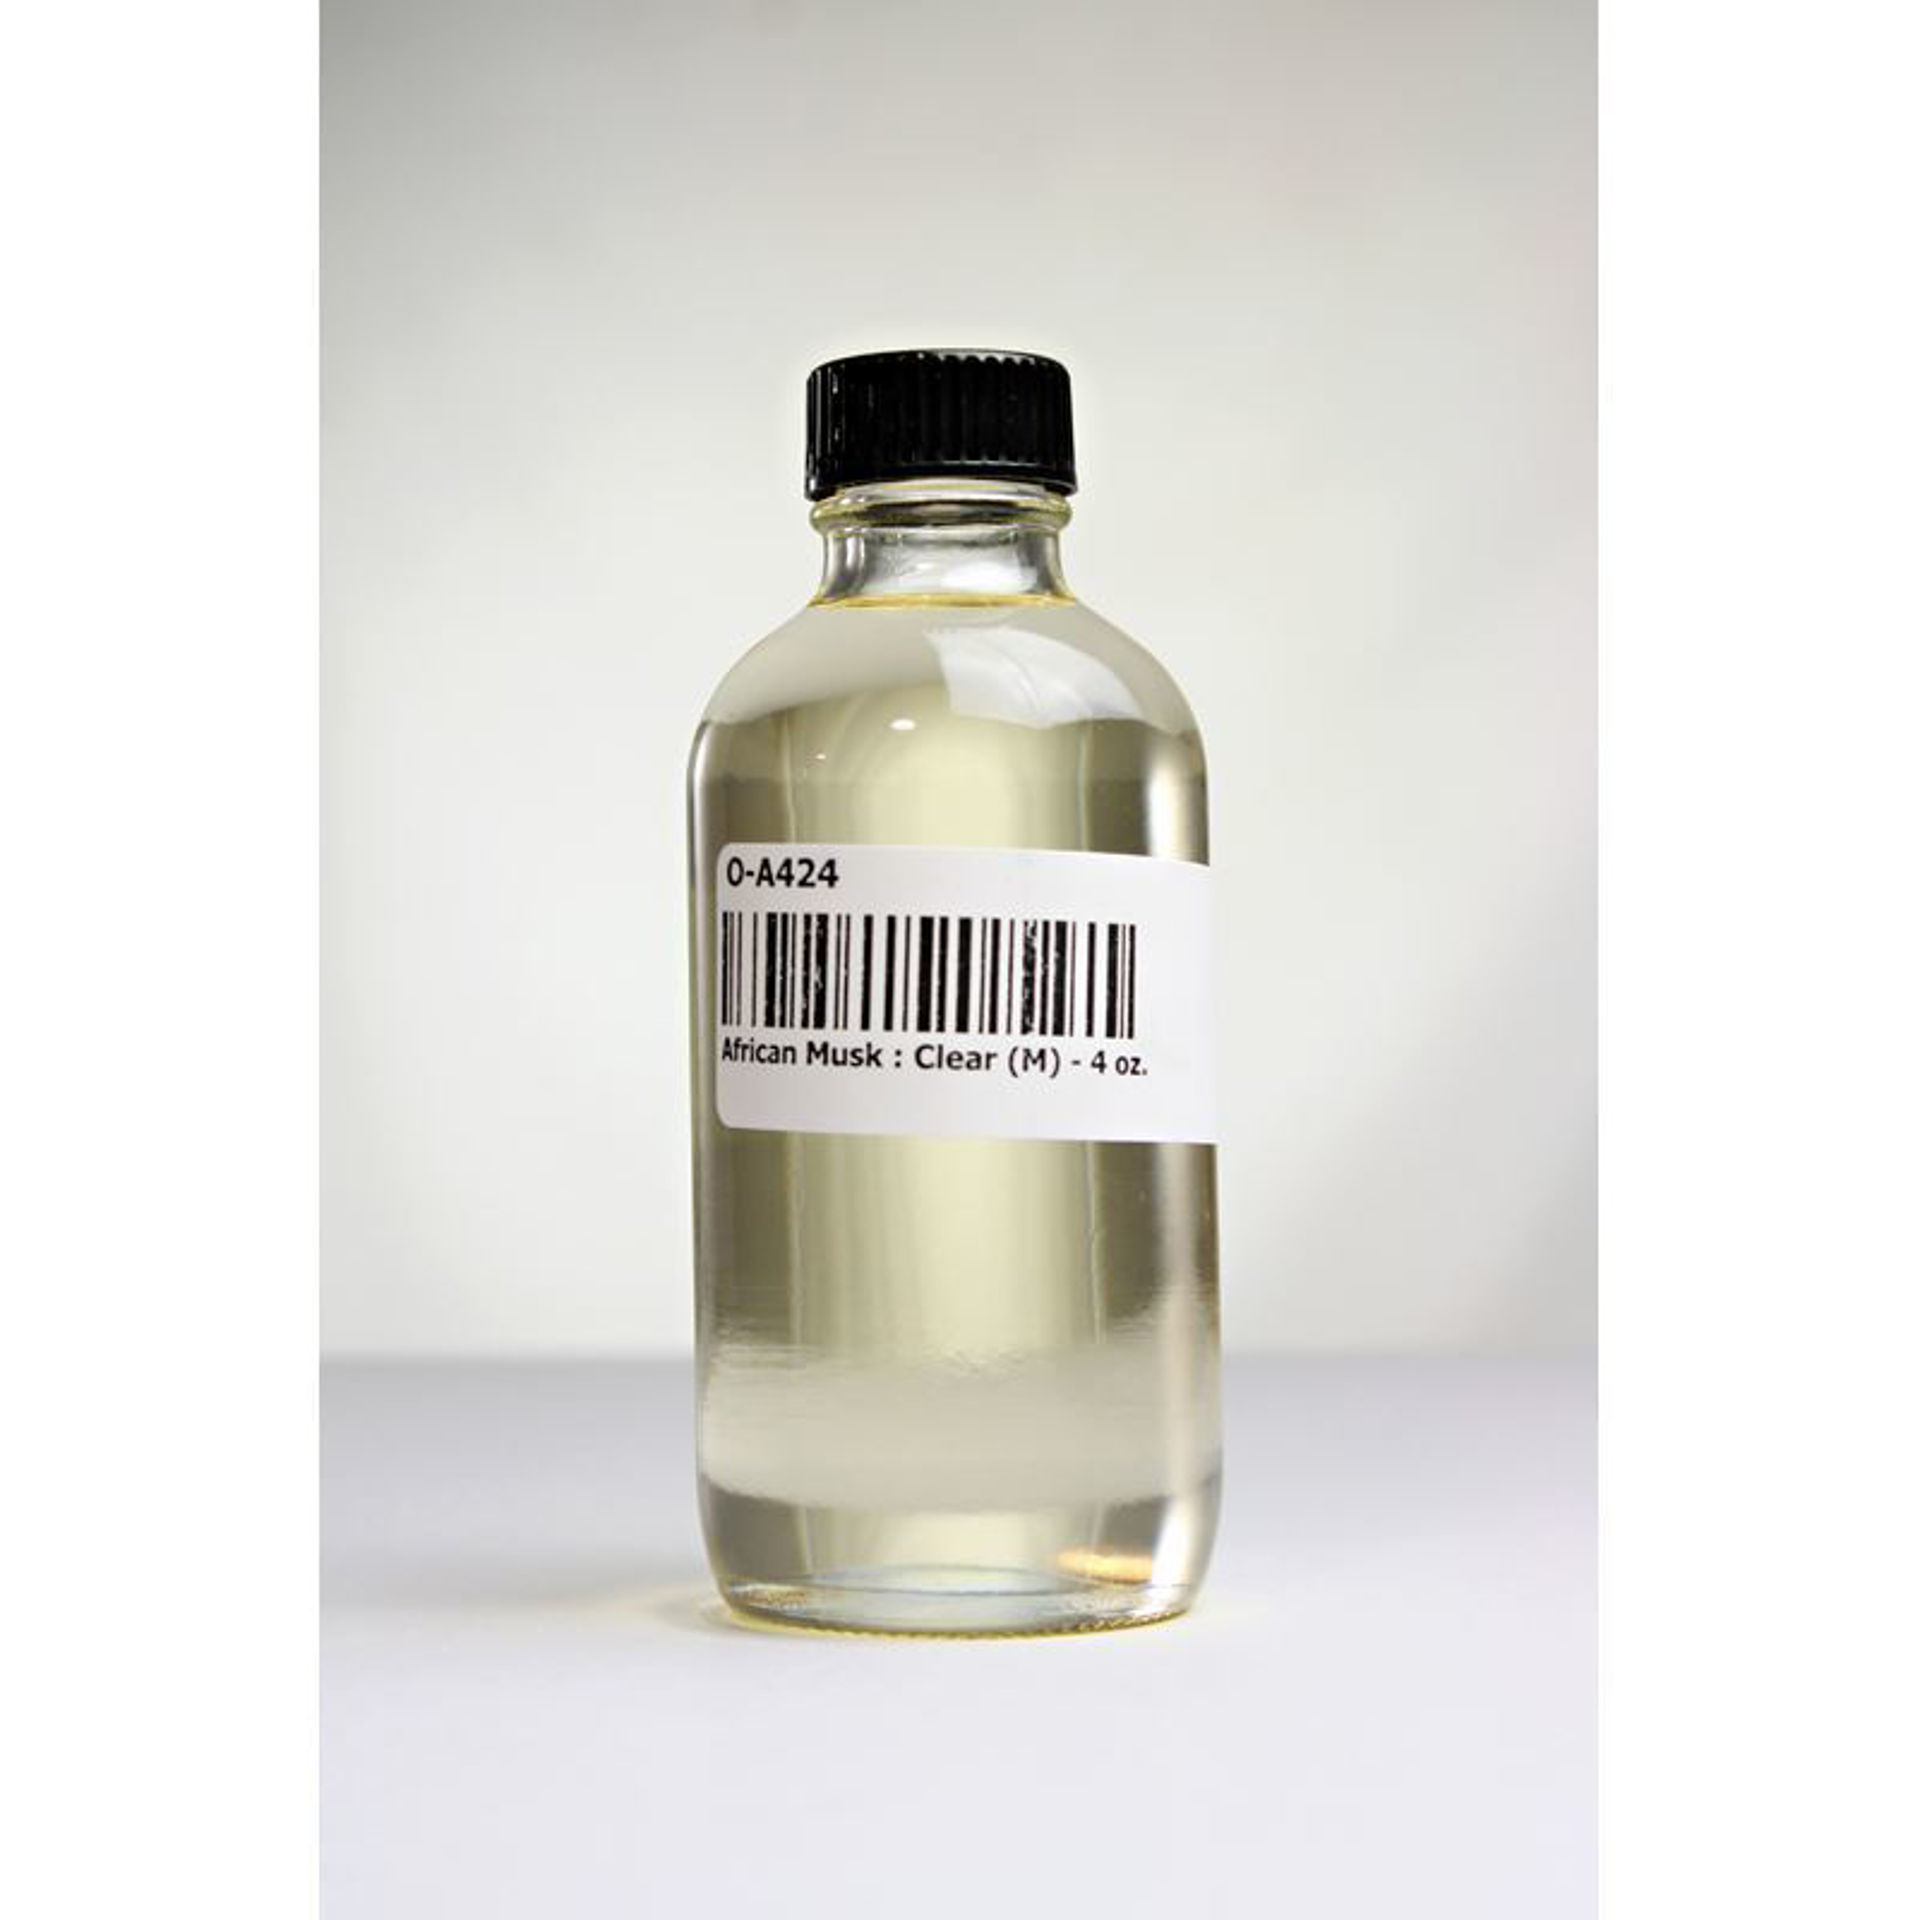 Picture of African Musk: Clear (M) - 4 oz.